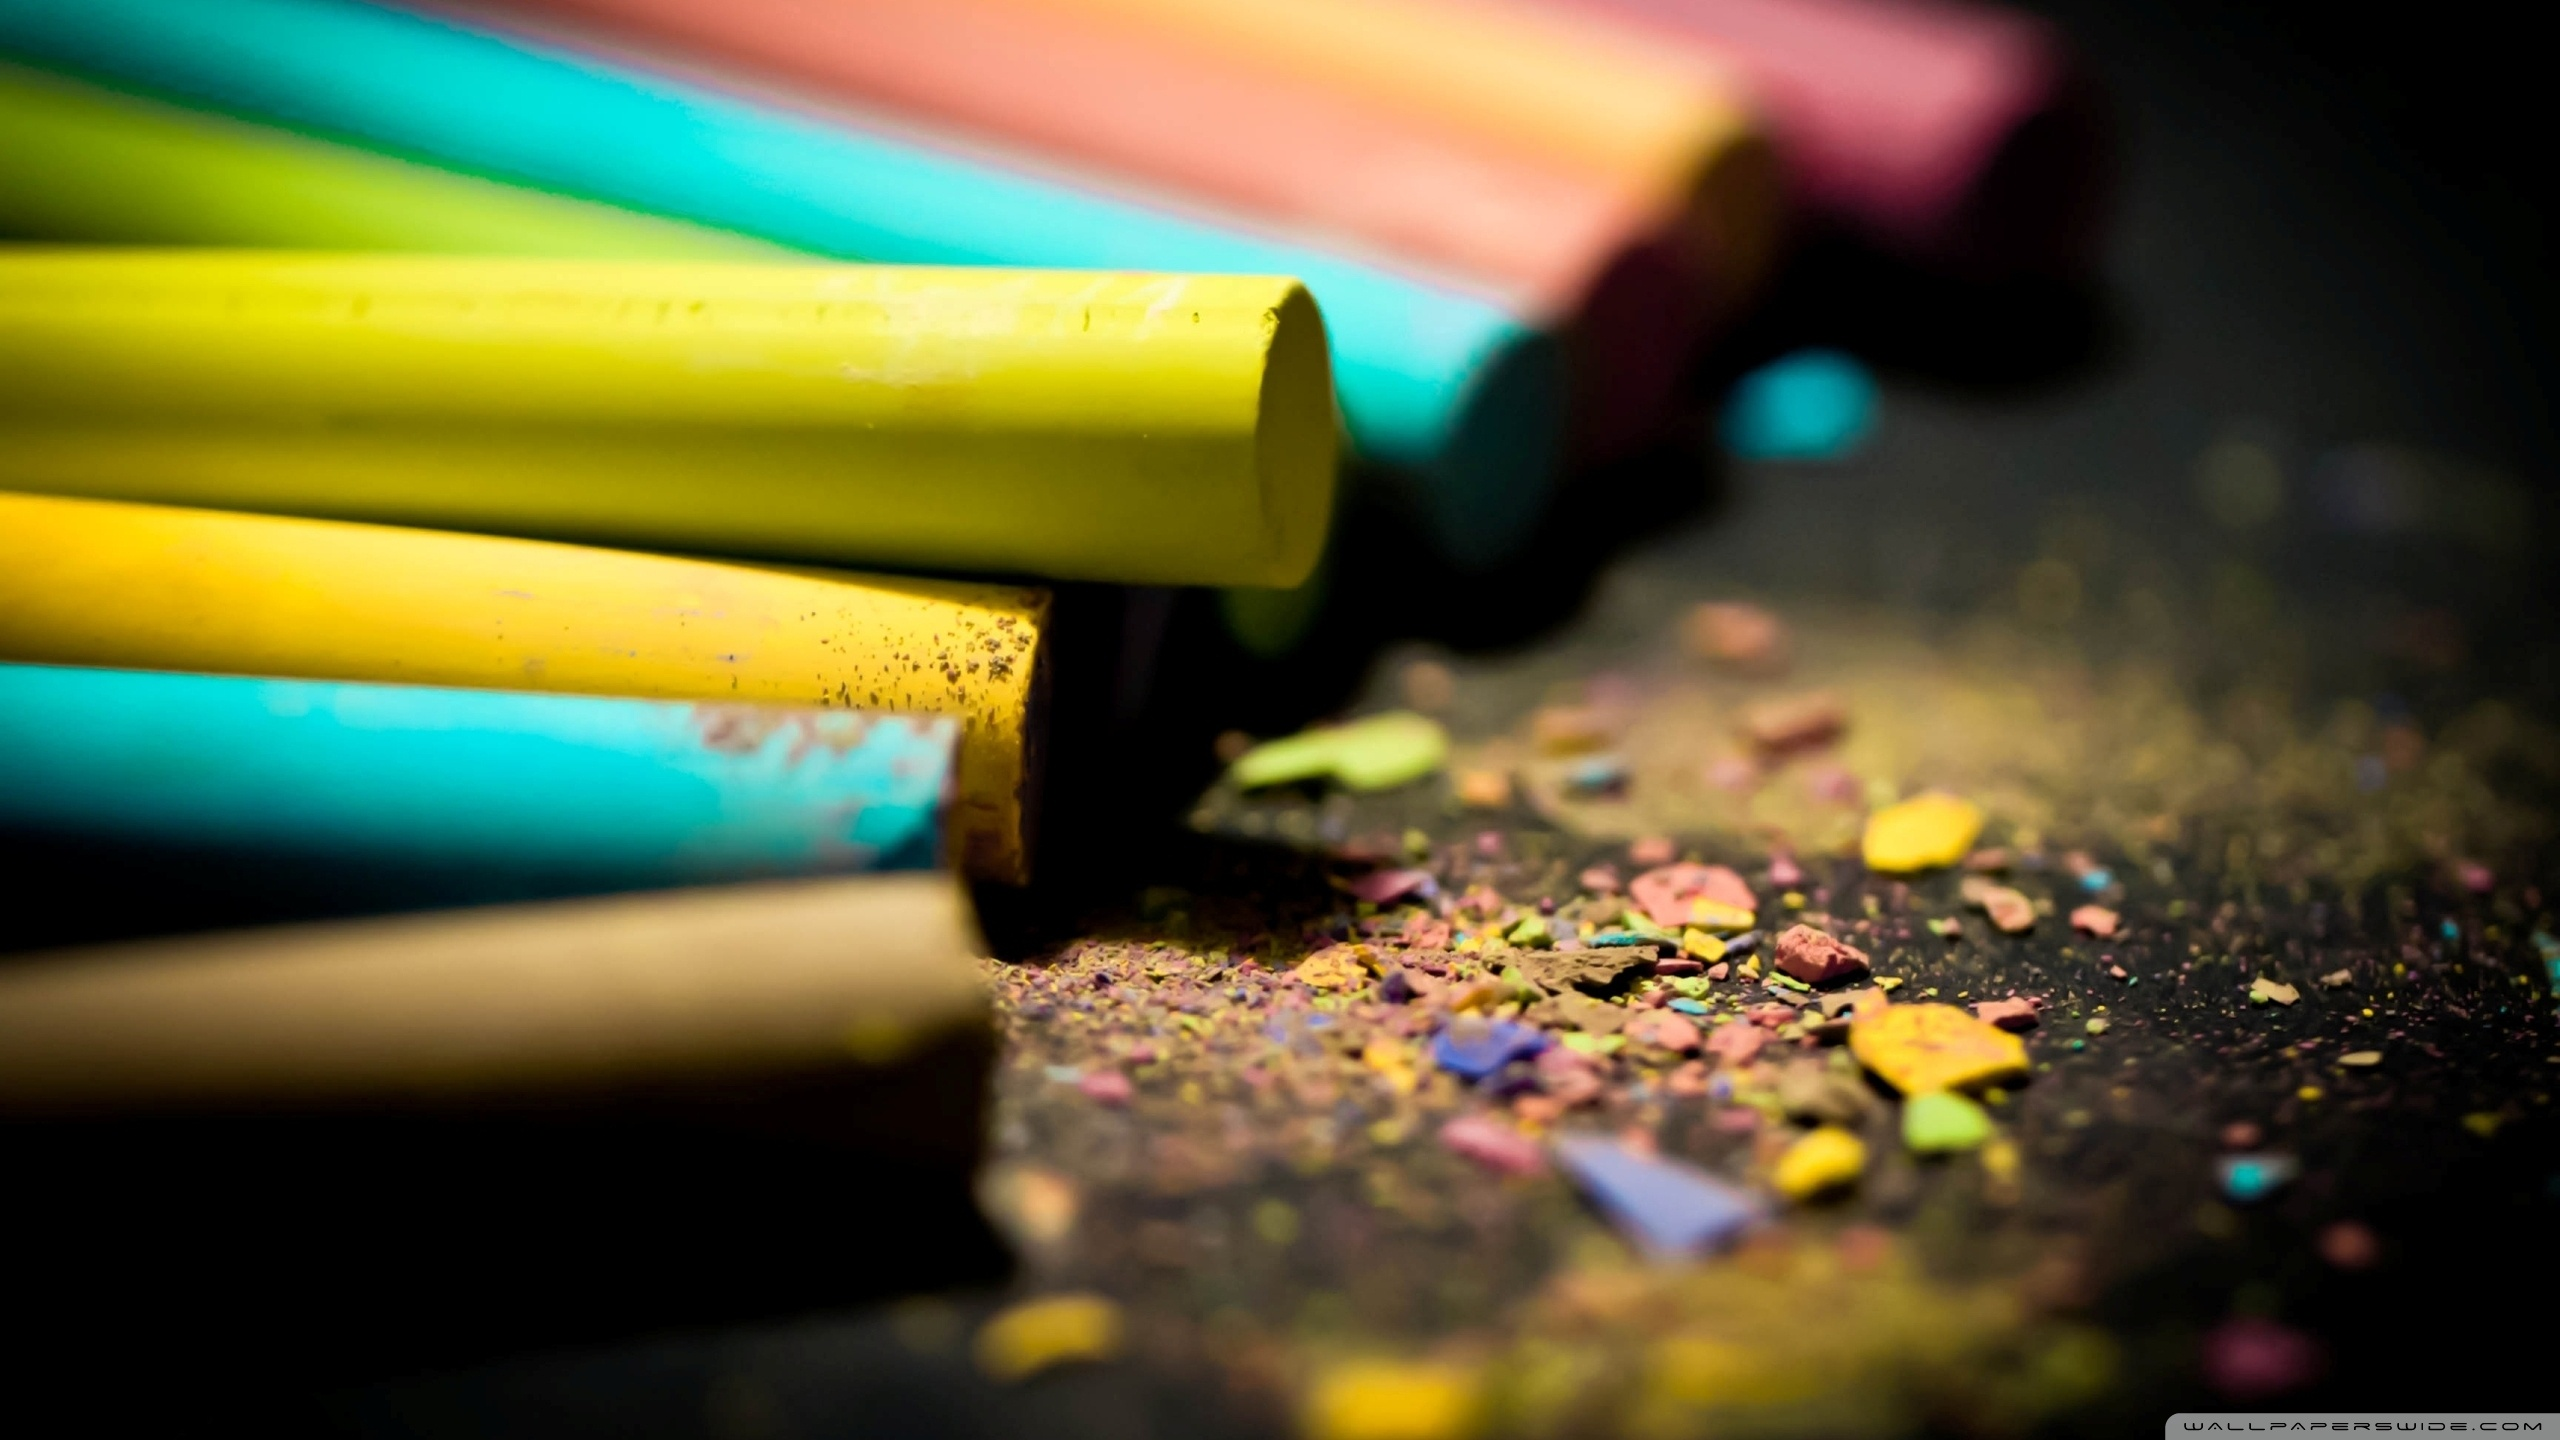 Colored Chalk 4K HD Desktop Wallpaper for 4K Ultra HD TV Dual 2560x1440